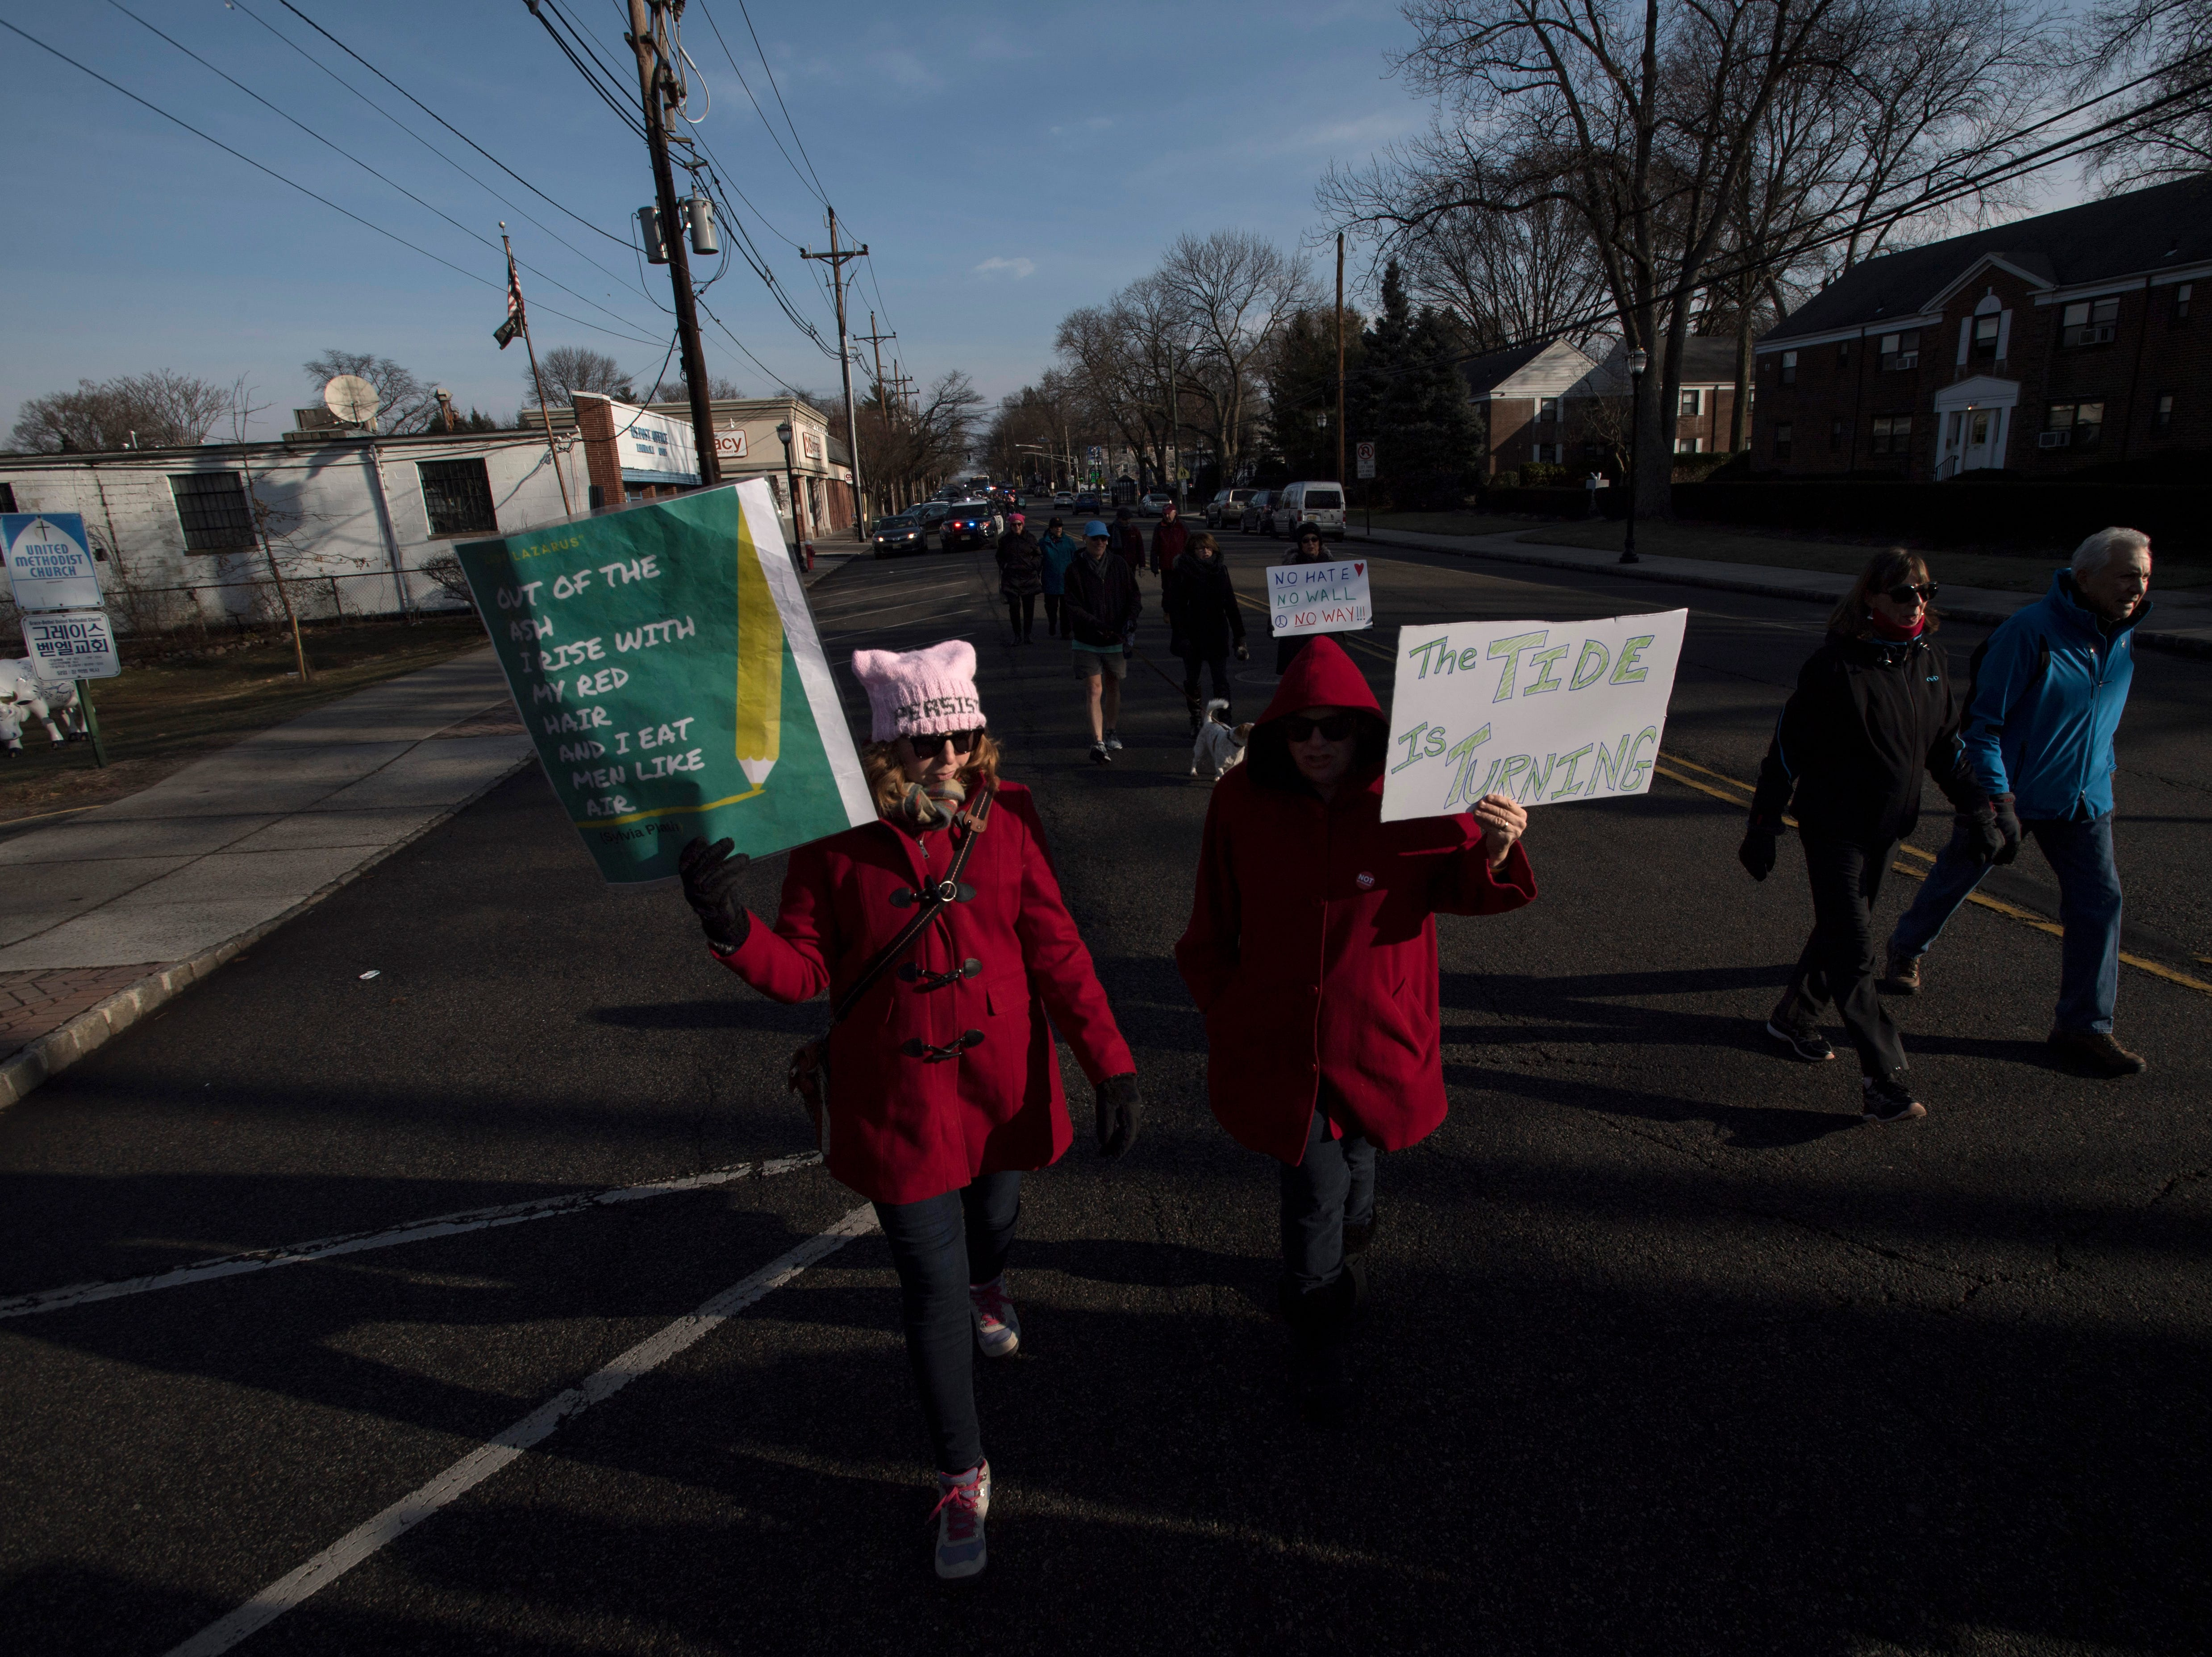 (left) Elizabeth Lefford and Jean Sagredo march on Broad Avenue in Leonia during the Leonia Women's March on Saturday, January 19, 2019.